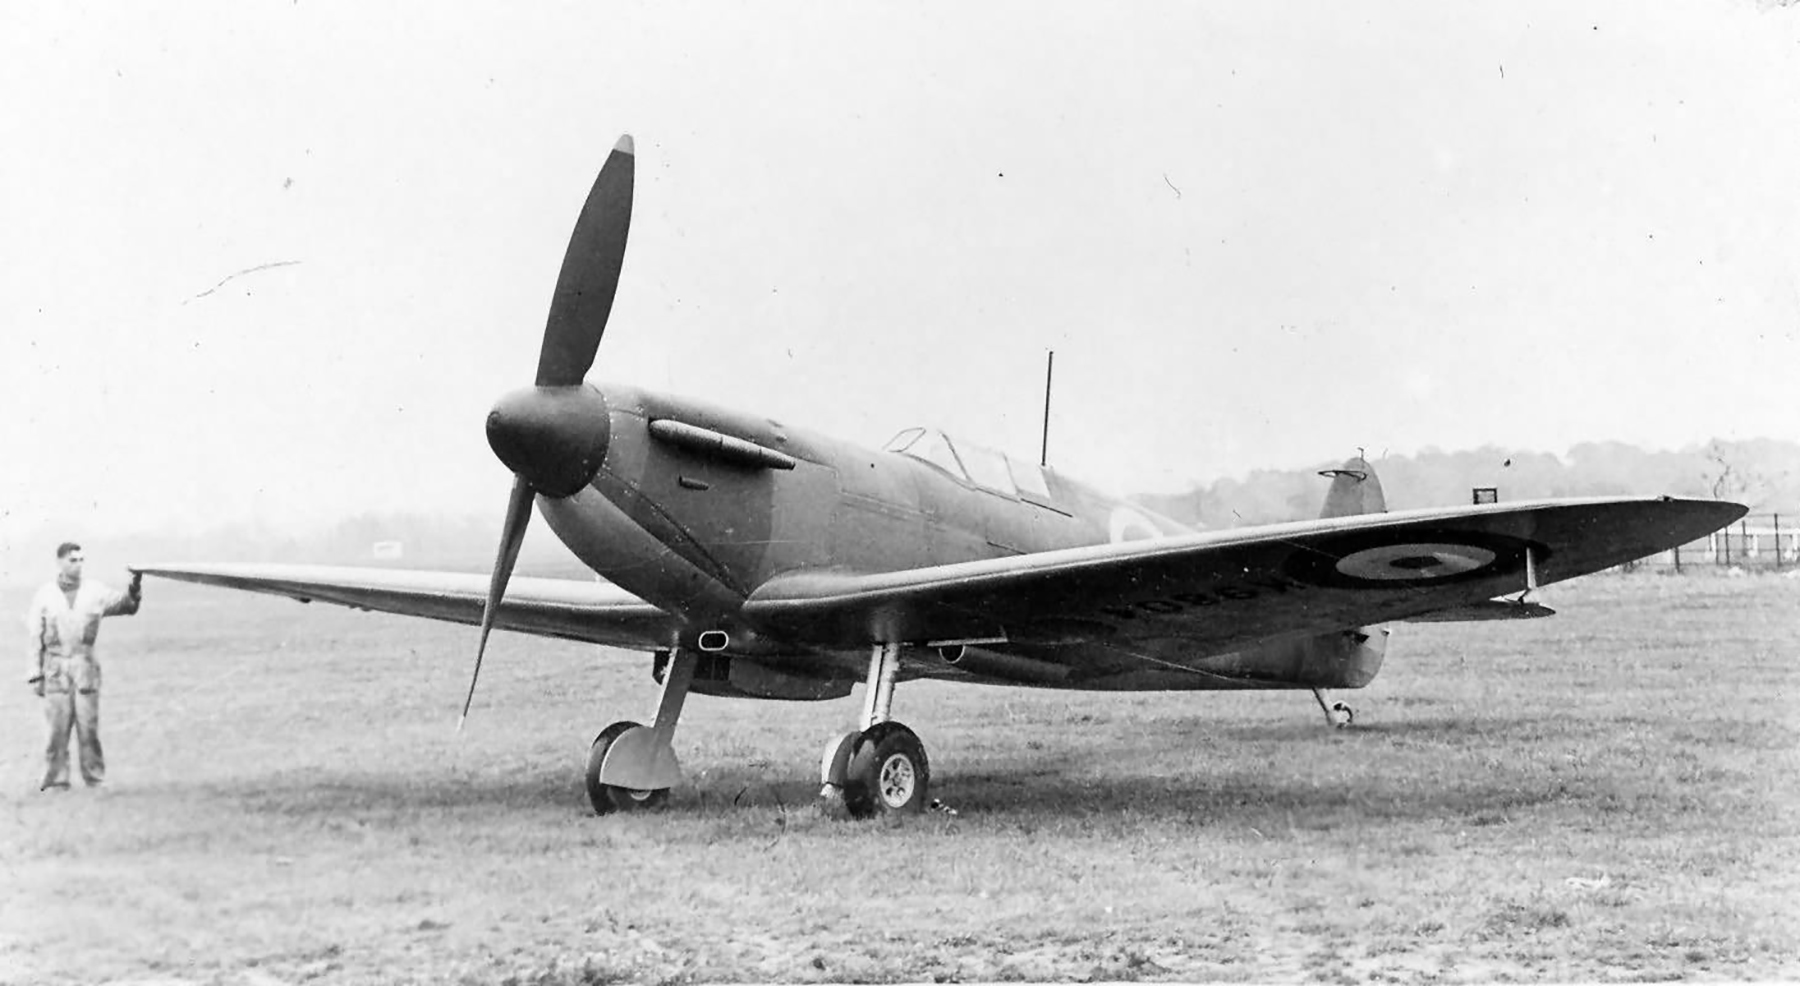 Factory fresh Spitfire MkI K9801 with 2 blade propeller profile view web 01